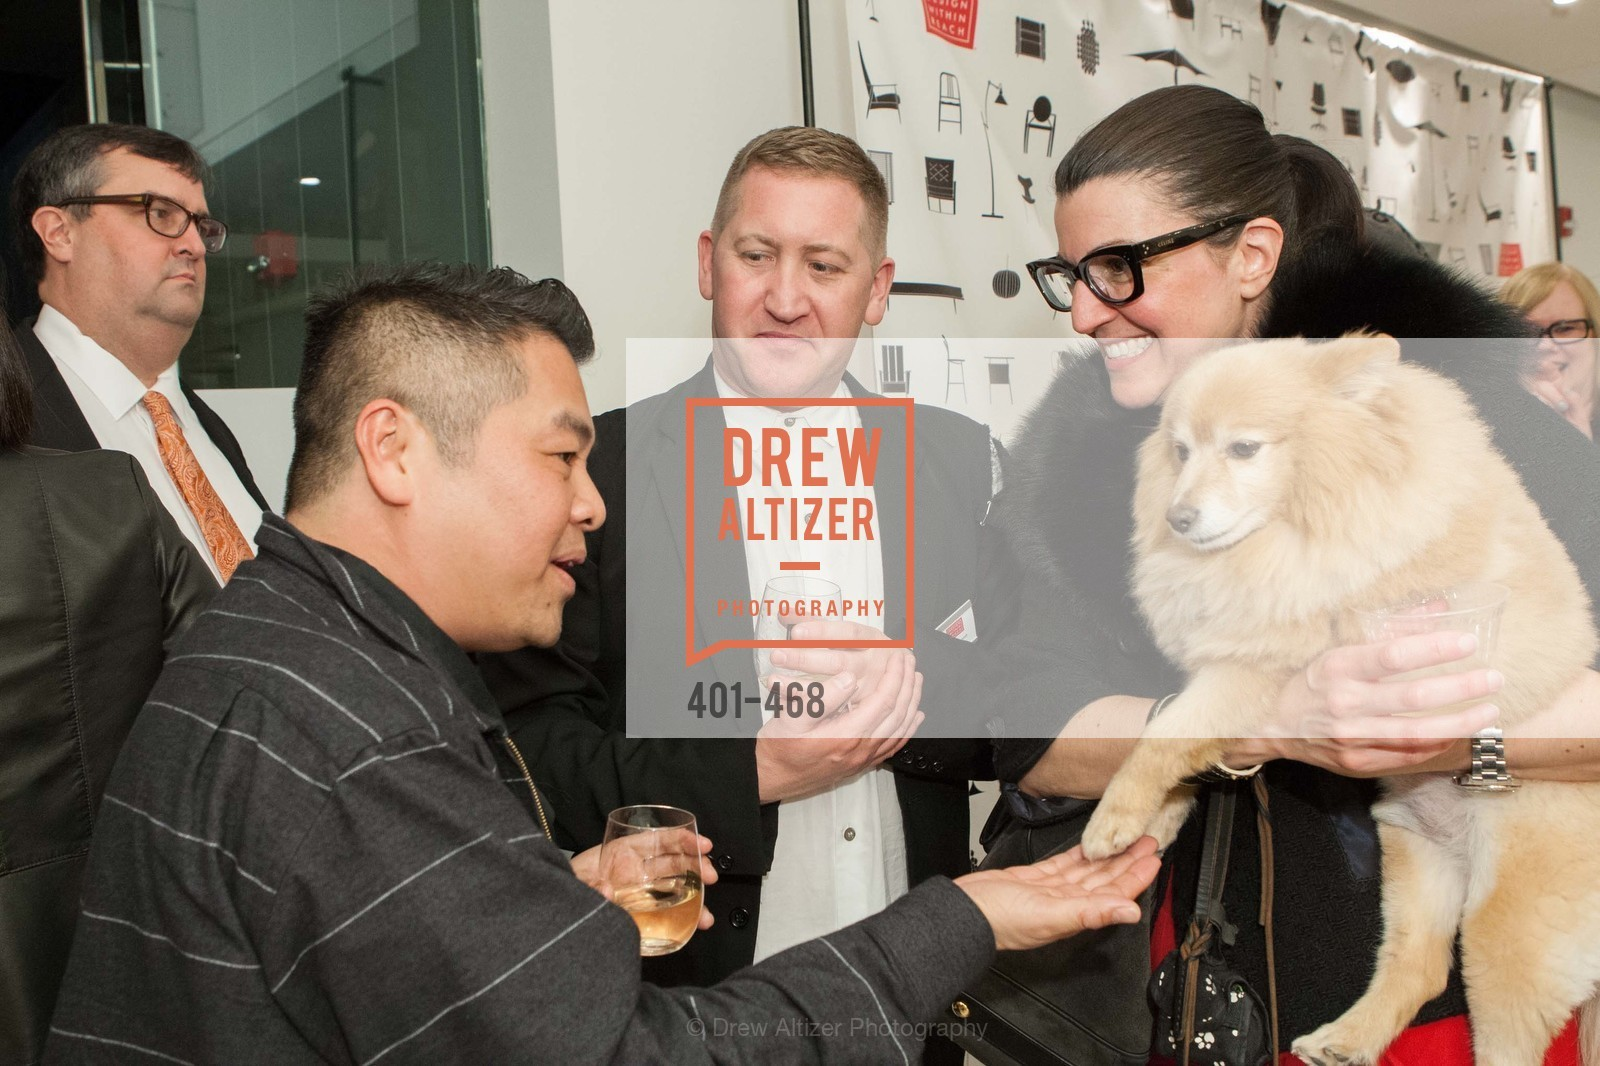 De Kwok, Eric Hildebrandt, Janet Walder, DESIGN WITHIN REACH Studio Opening, US. US, January 21st, 2014,Drew Altizer, Drew Altizer Photography, full-service agency, private events, San Francisco photographer, photographer california